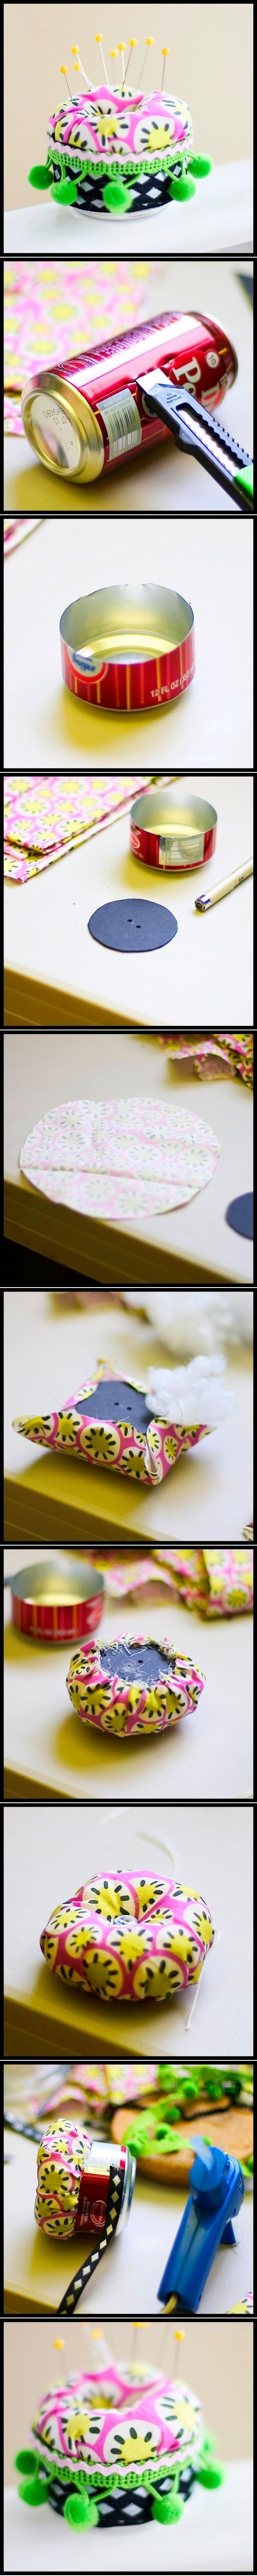 DIY Soda Can Pincushion | UsefulDIY.com Follow Us on Facebook ==> http://www.facebook.com/UsefulDiy